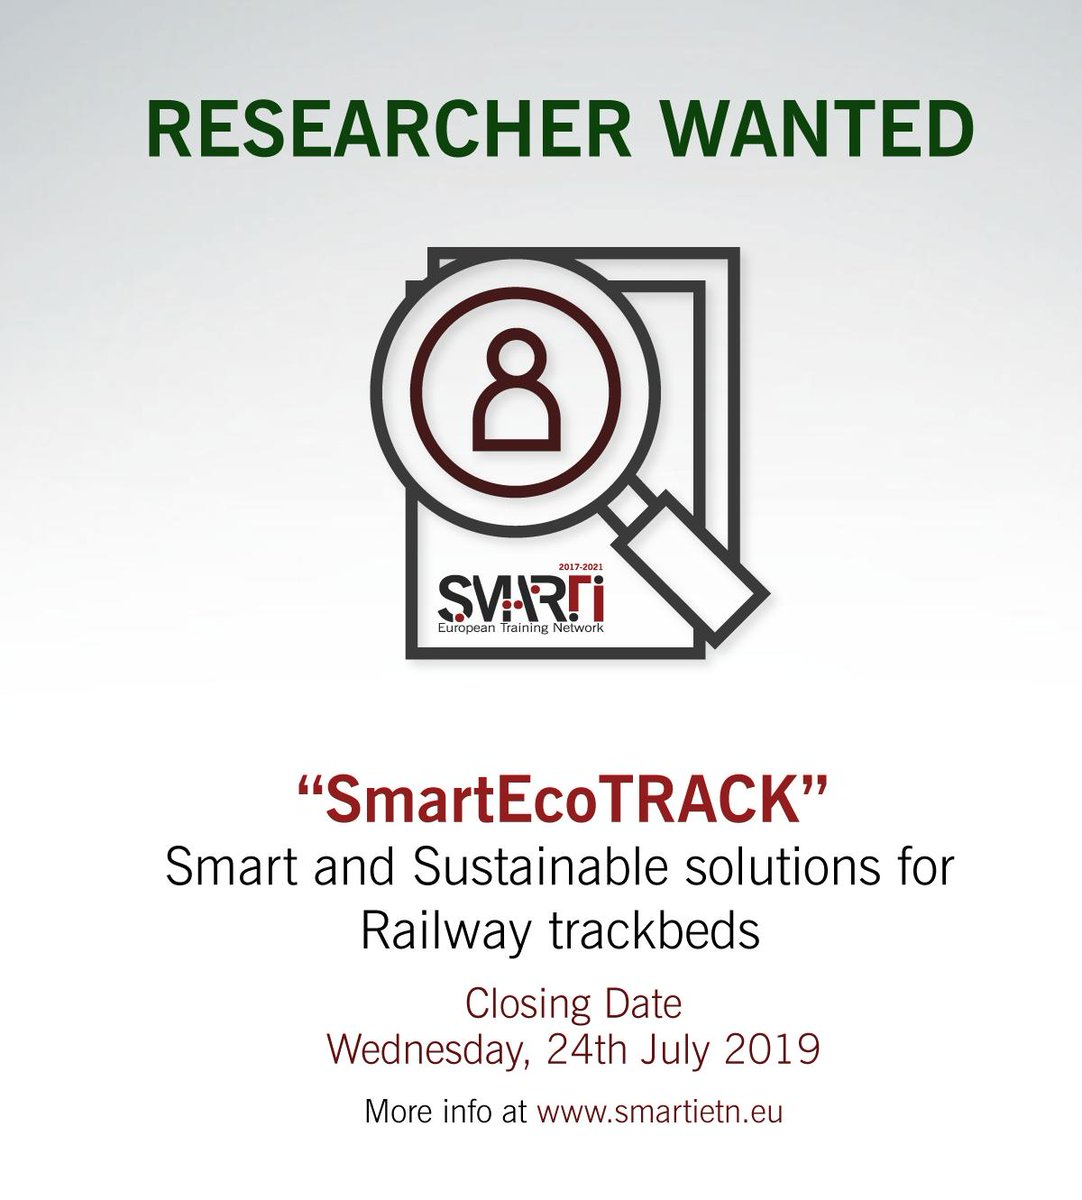 "#OPENCALL for a @MSCActions researcher under @smartietn project ""SmartEcoTRACK"", #Smart and #Sustainable solutions for #Railway trackbeds"", at the @UniofNottingham. Don't miss this great opportunity and apply until 24th July at https://bit.ly/2X8XHB5 ! #MSCAjobopportunity #H2020"